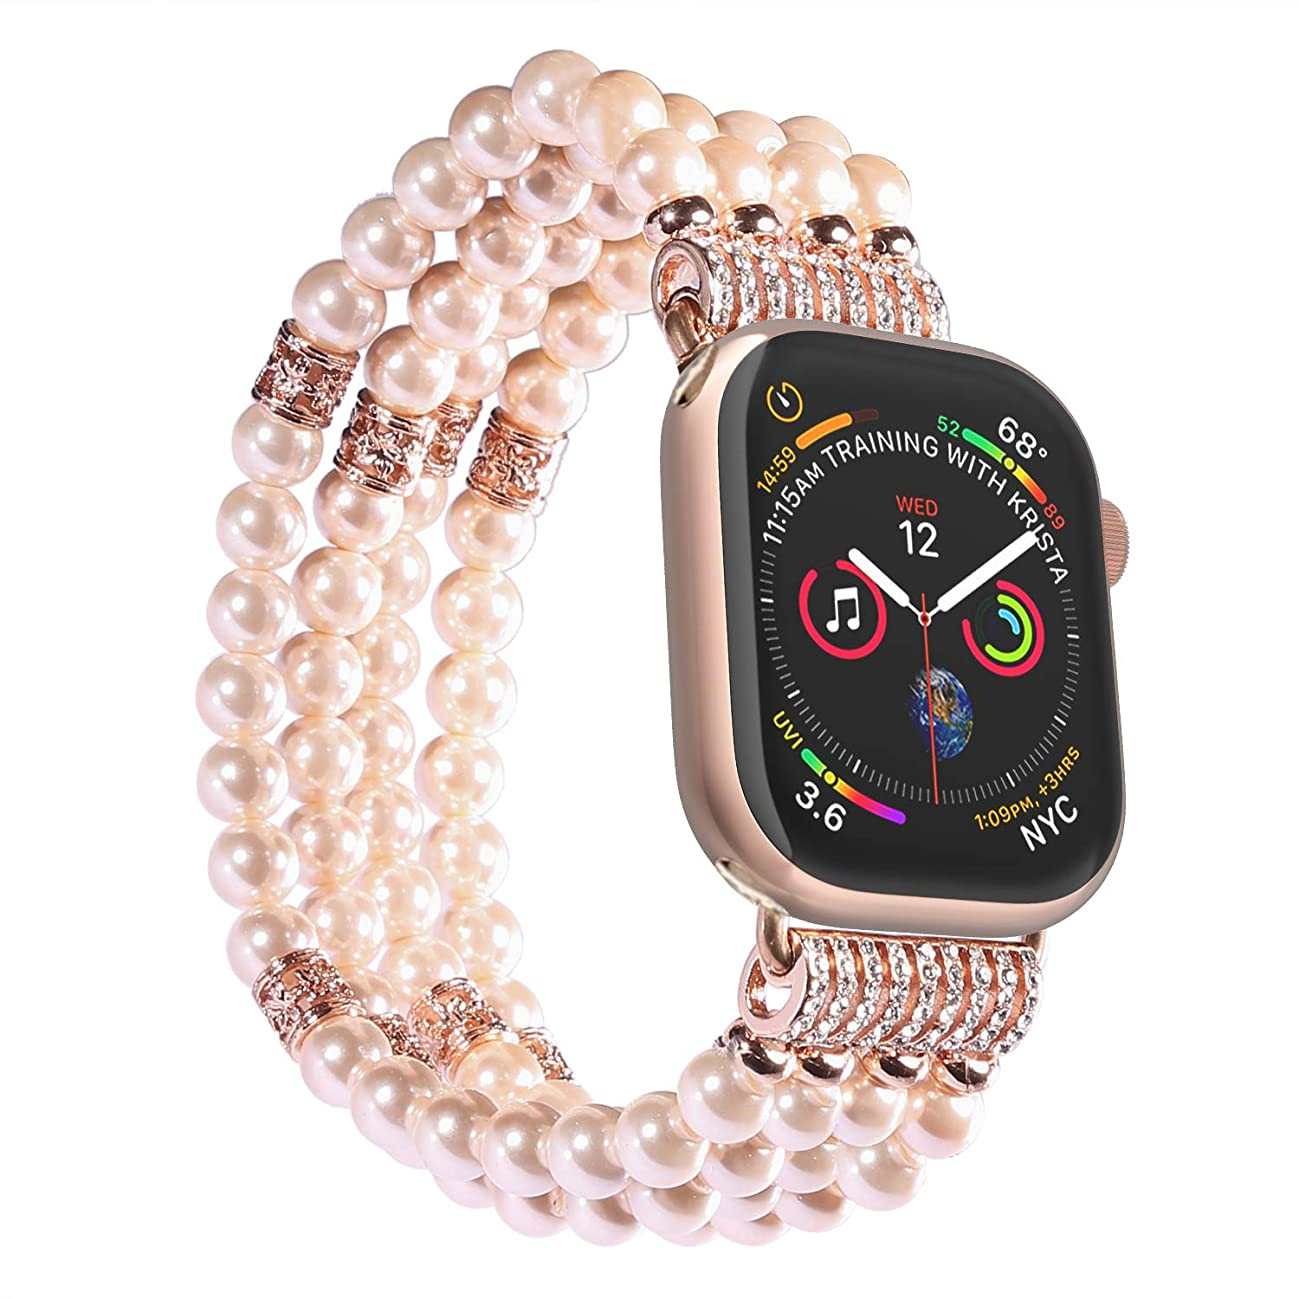 Imymax Replacement for Apple Watch Band 38mm/40mm Handmade Beaded Elastic Stretch Faux Pearl Bracelet Replacement iWatch Strap/Wristband for iWatch Series 4/3/2/1 - Pink for Women Girl